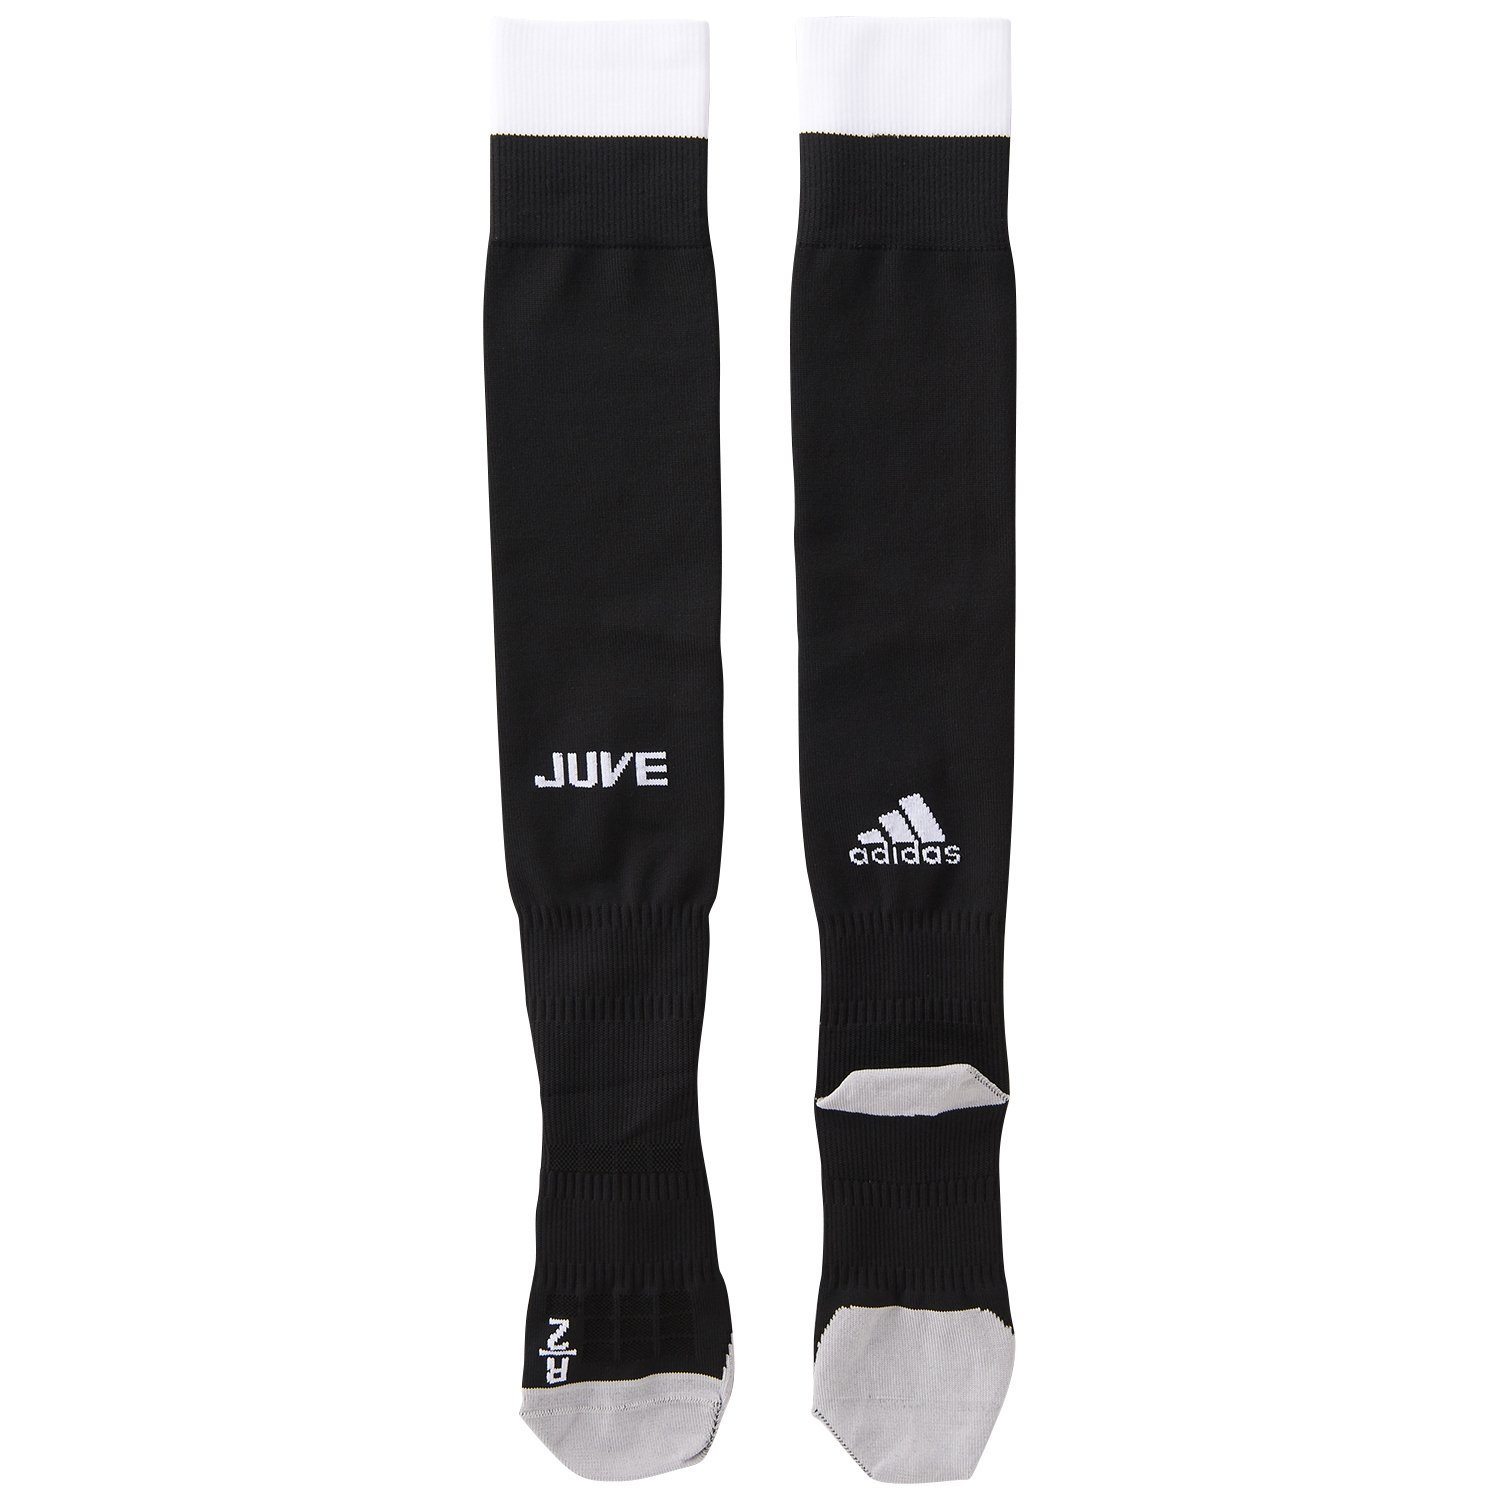 adidas juventus domicile chaussettes homme noir blanc fr 40 42 cm taille. Black Bedroom Furniture Sets. Home Design Ideas